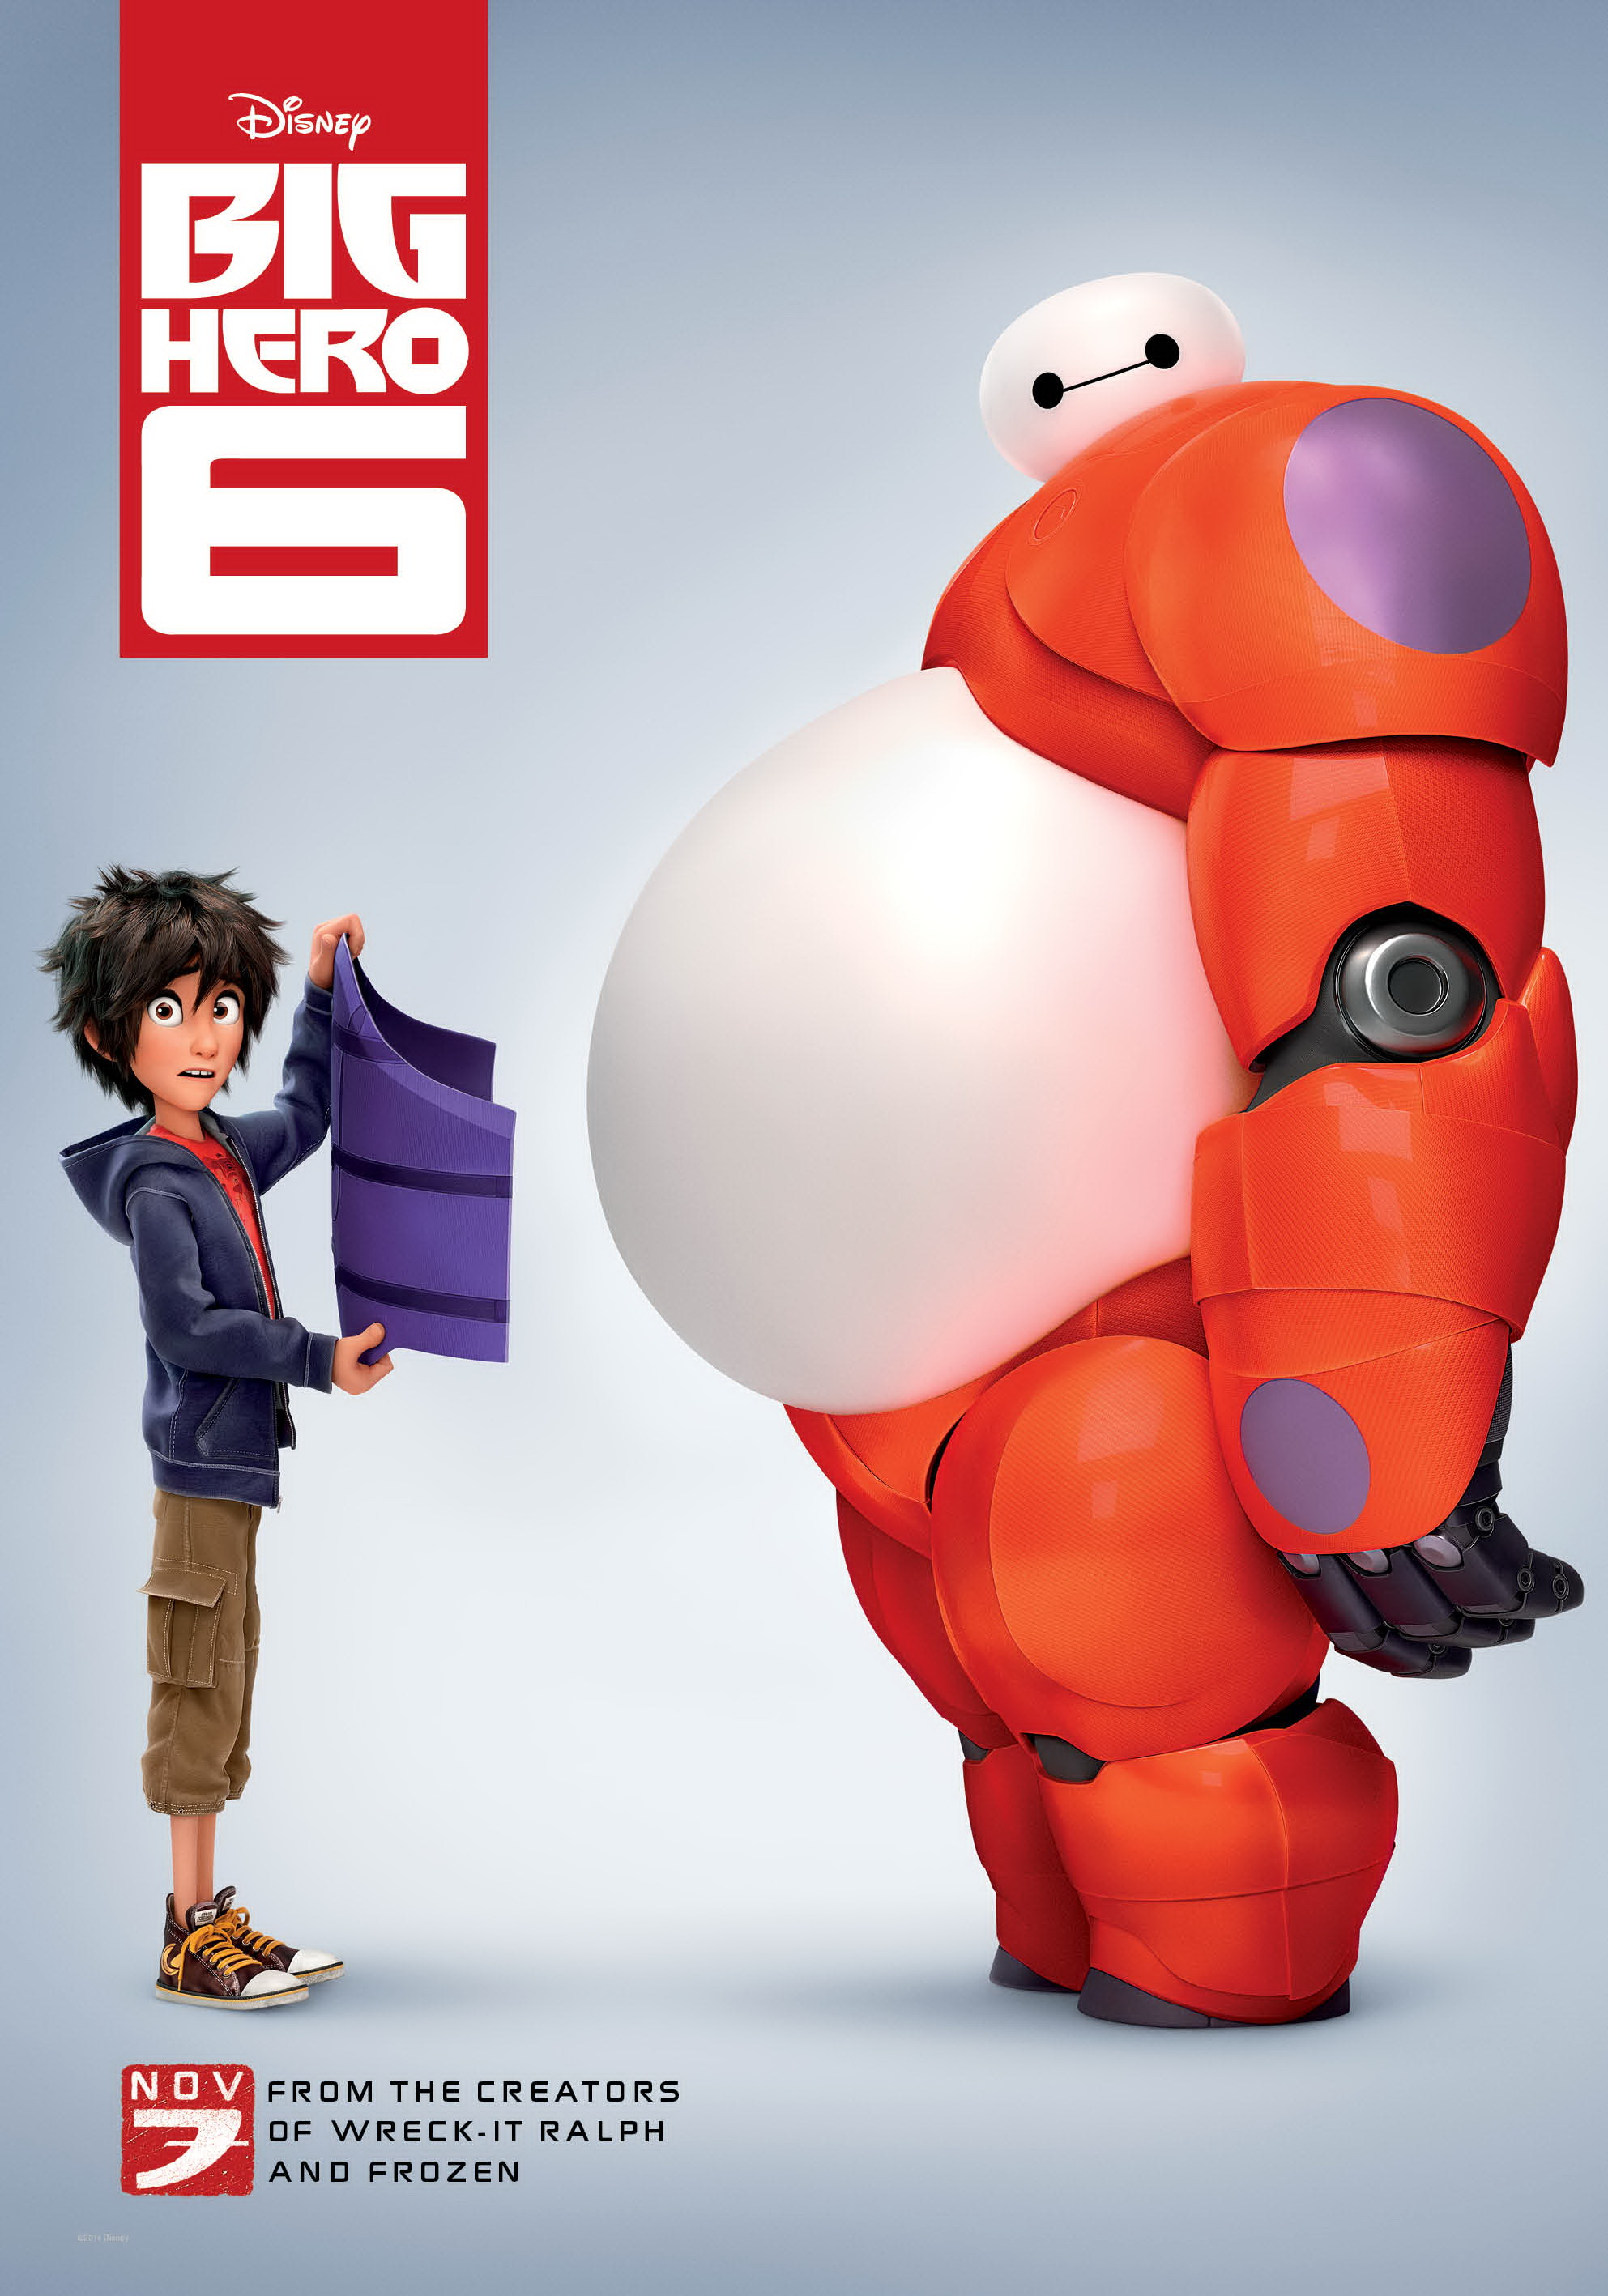 Big Hero 6 Backgrounds, Compatible - PC, Mobile, Gadgets| 1985x2835 px